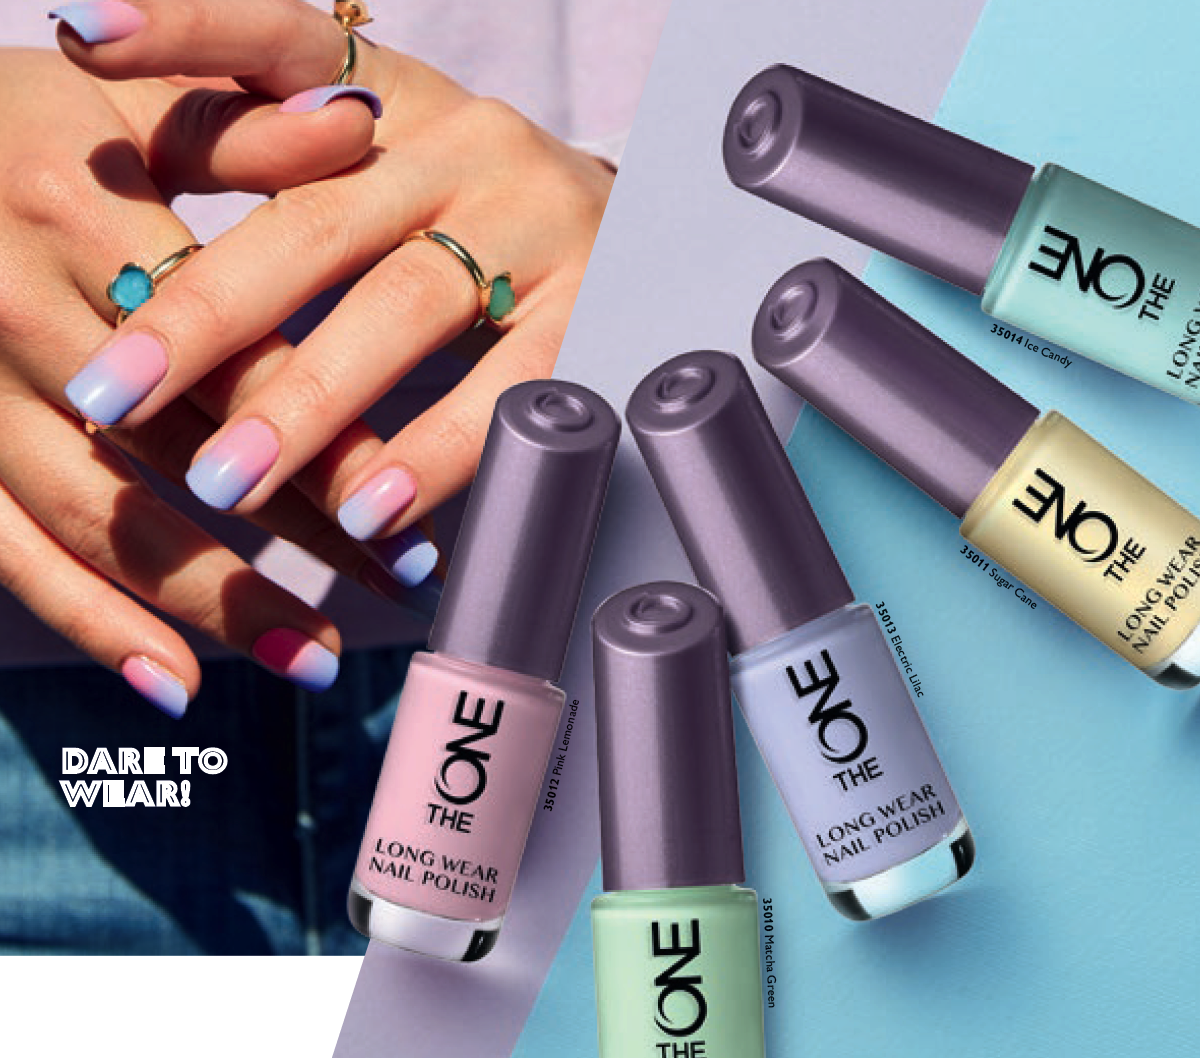 The ONE Long Wear Nail Varnish : Pastel Colours